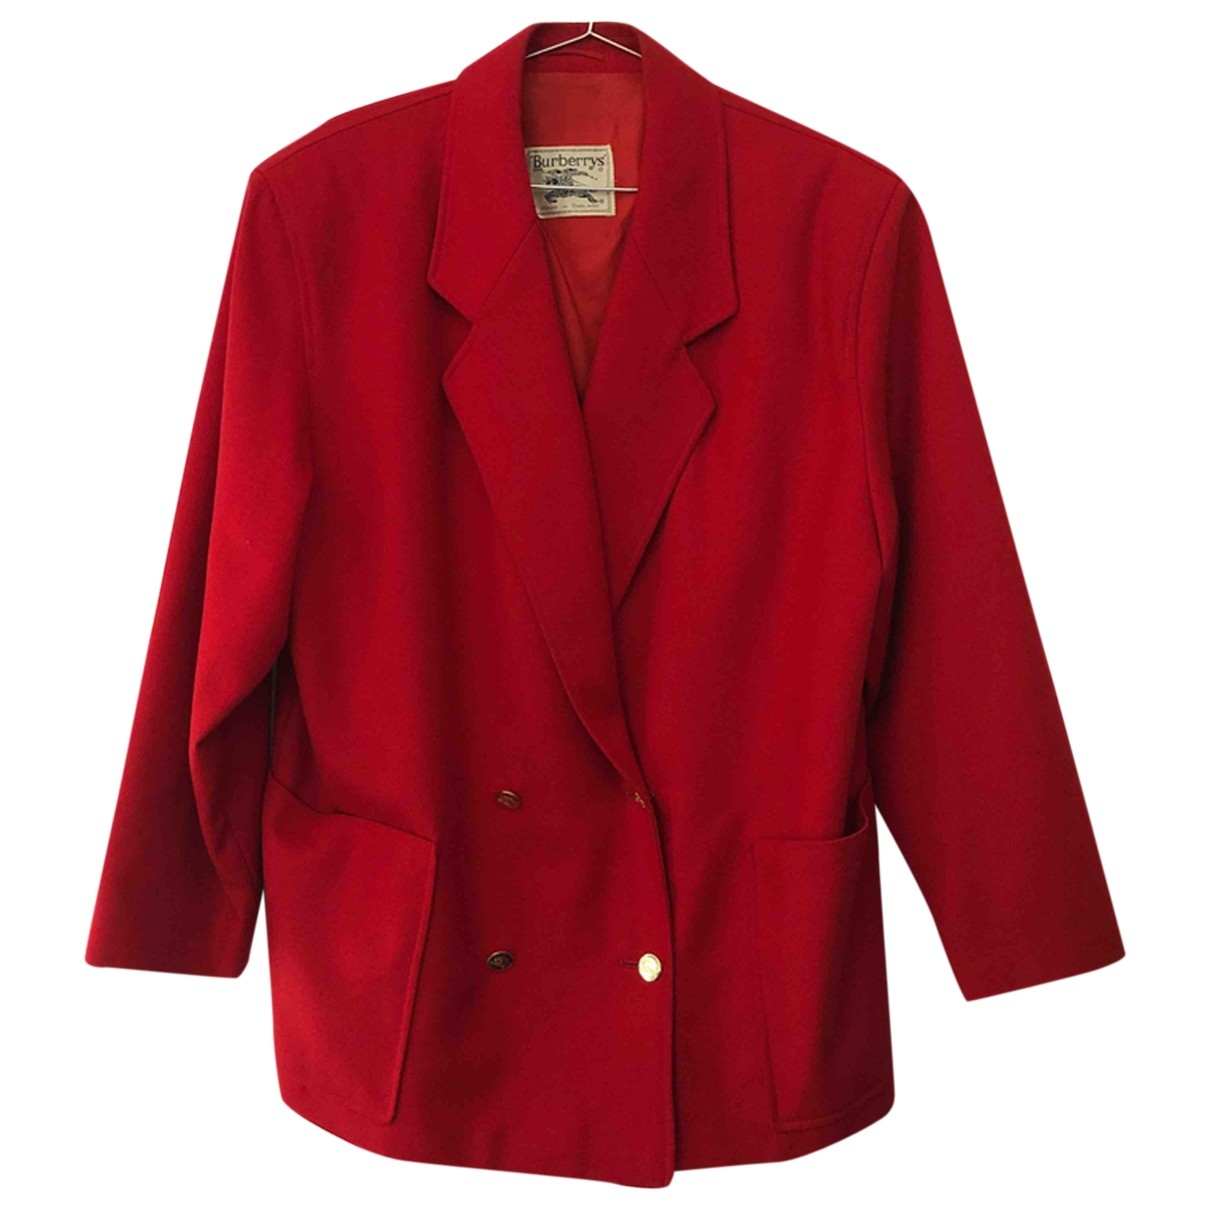 Burberry \N Red Wool jacket for Women 14 UK